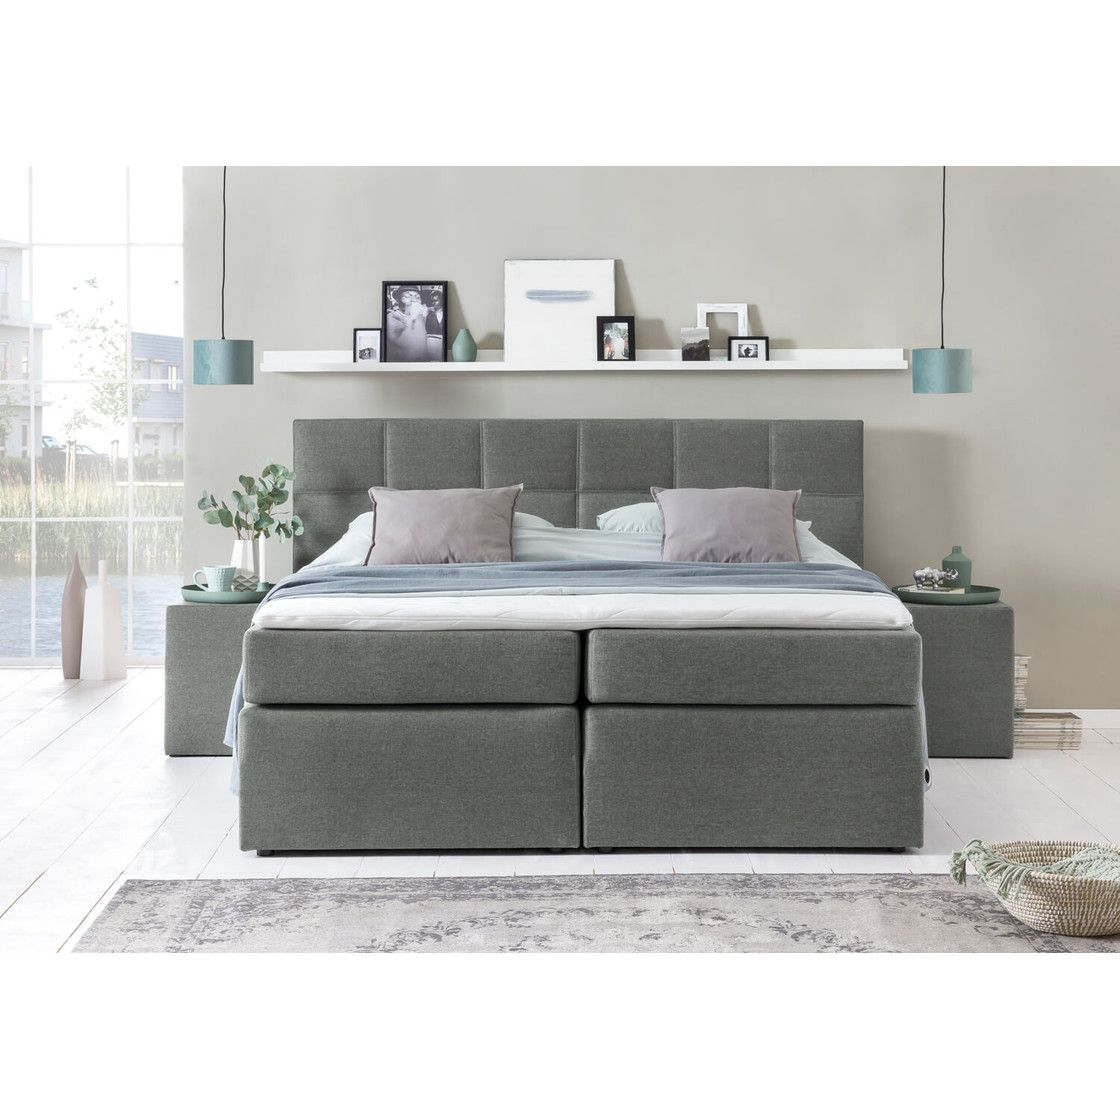 Bestseller Boxspringbett Bea Mit Visco Topper In 2020 Bettfedern Designer Bett Boxspringbett